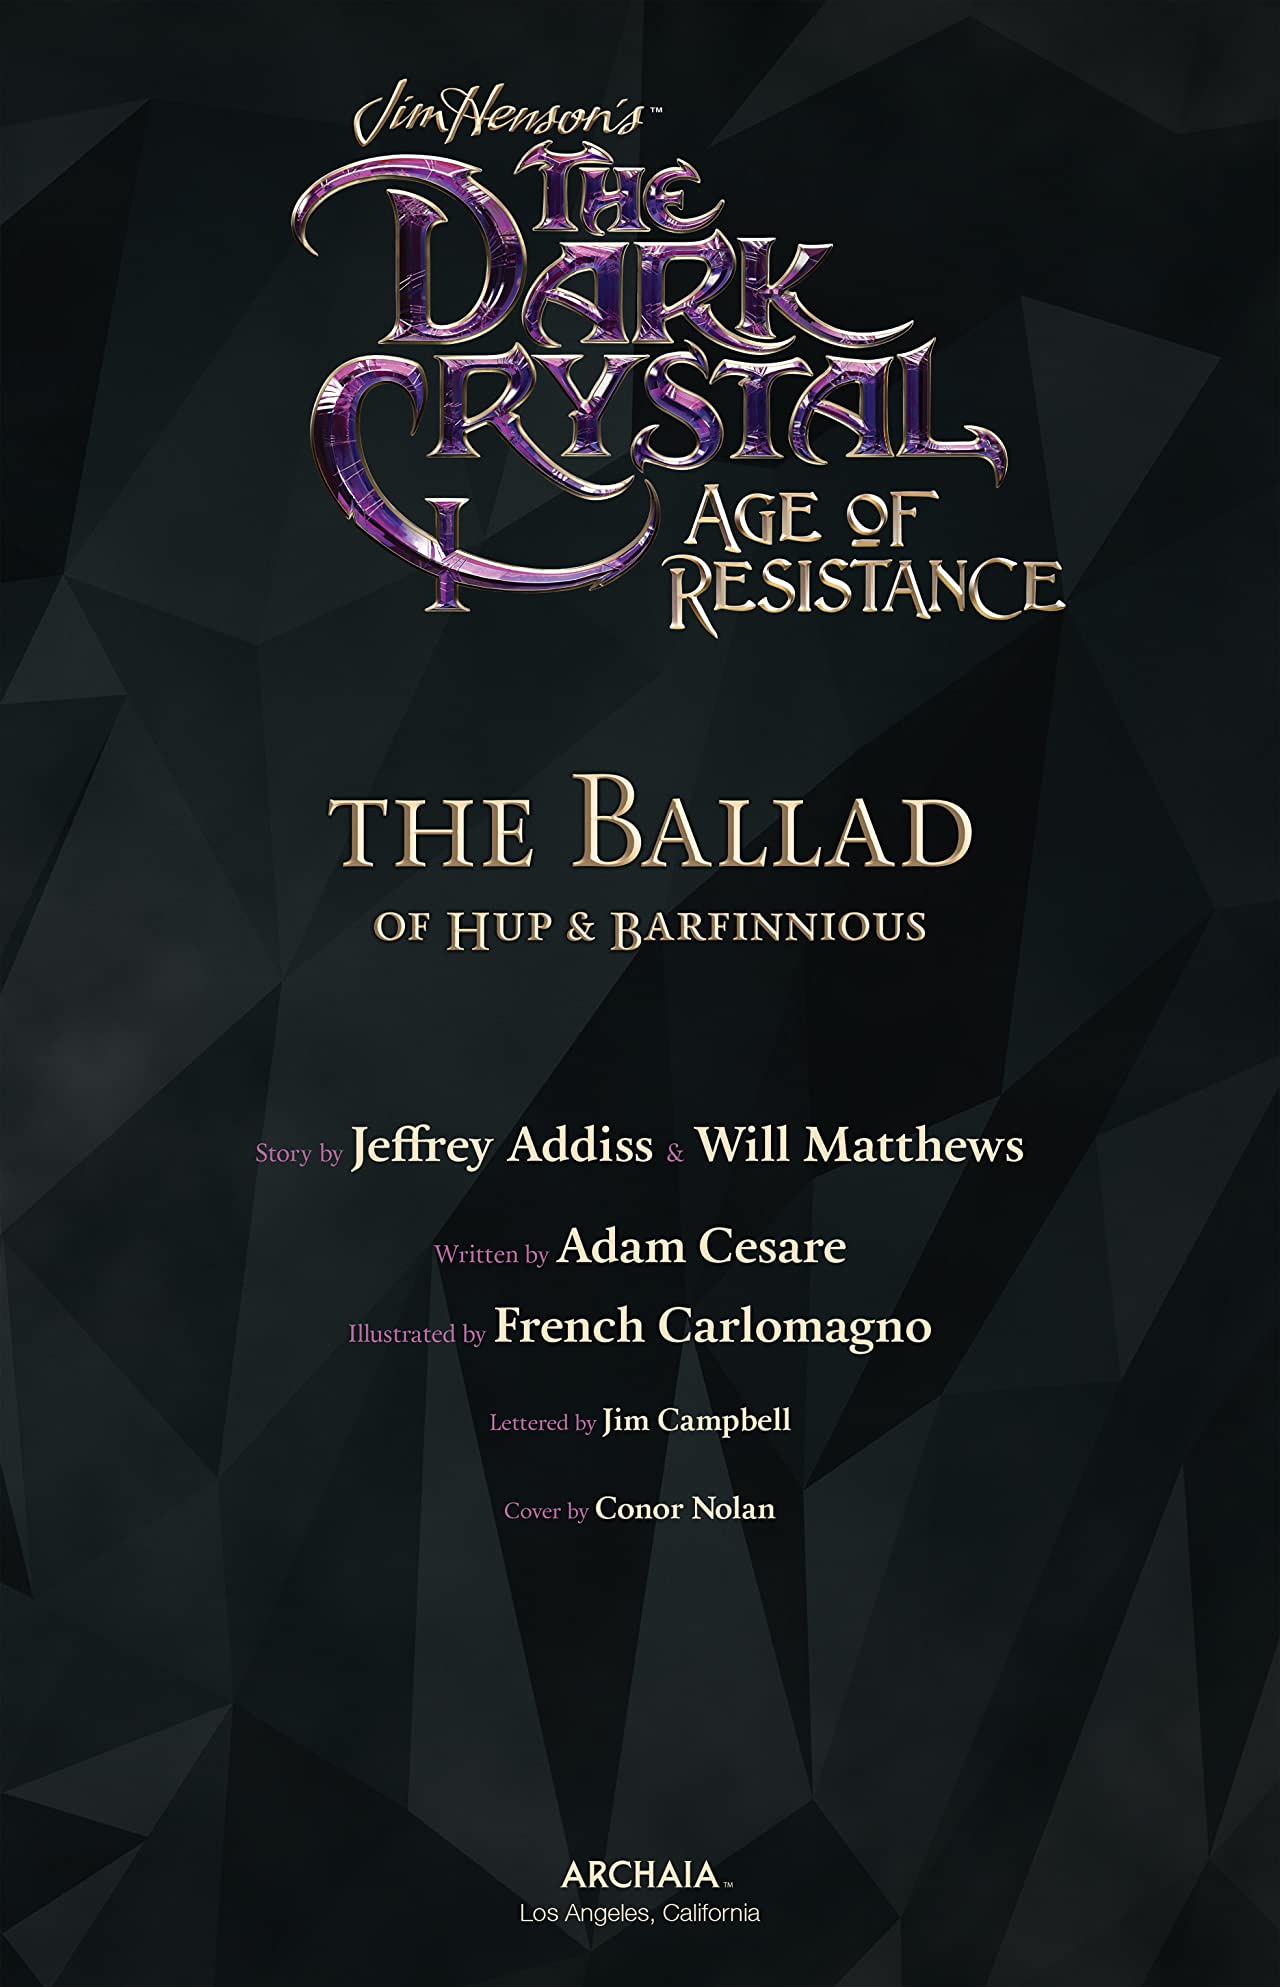 Jim Henson's The Dark Crystal: Age of Resistance Tome 2: The Ballad of Hup & Barfinnious